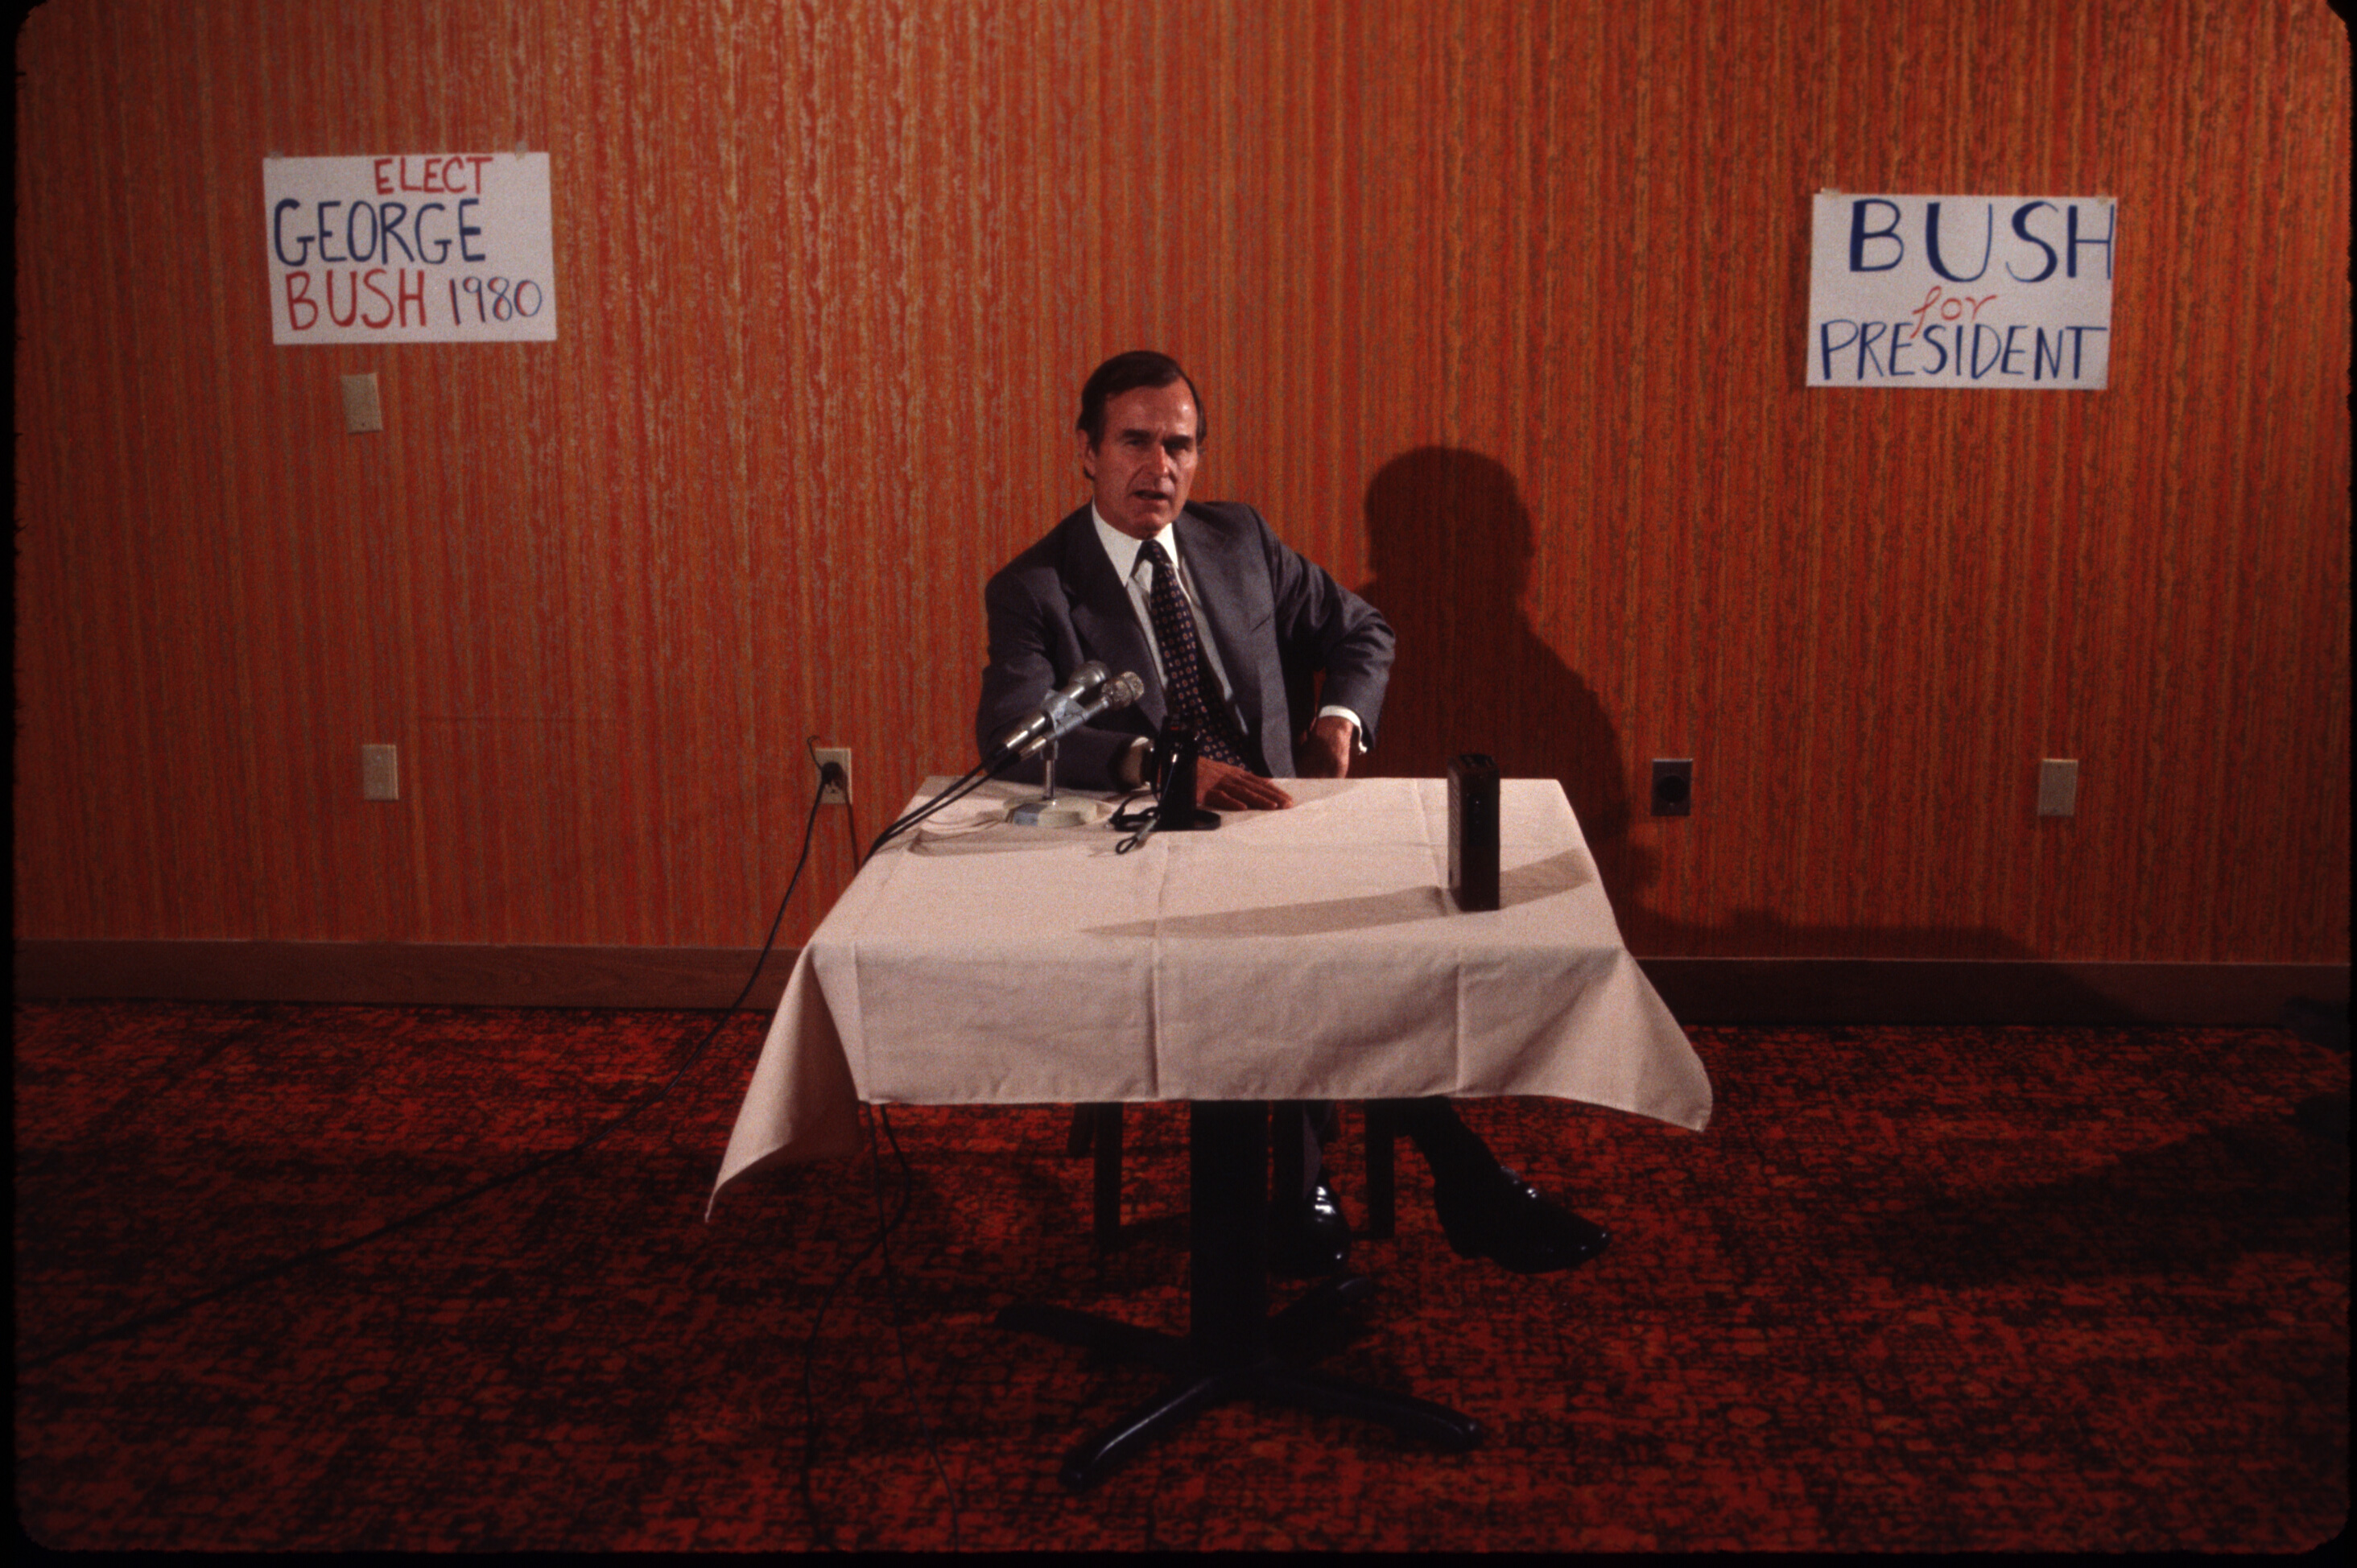 Republican Presidential candidate George H.W. Bush campaigning for the presidential primary elections in 1980.